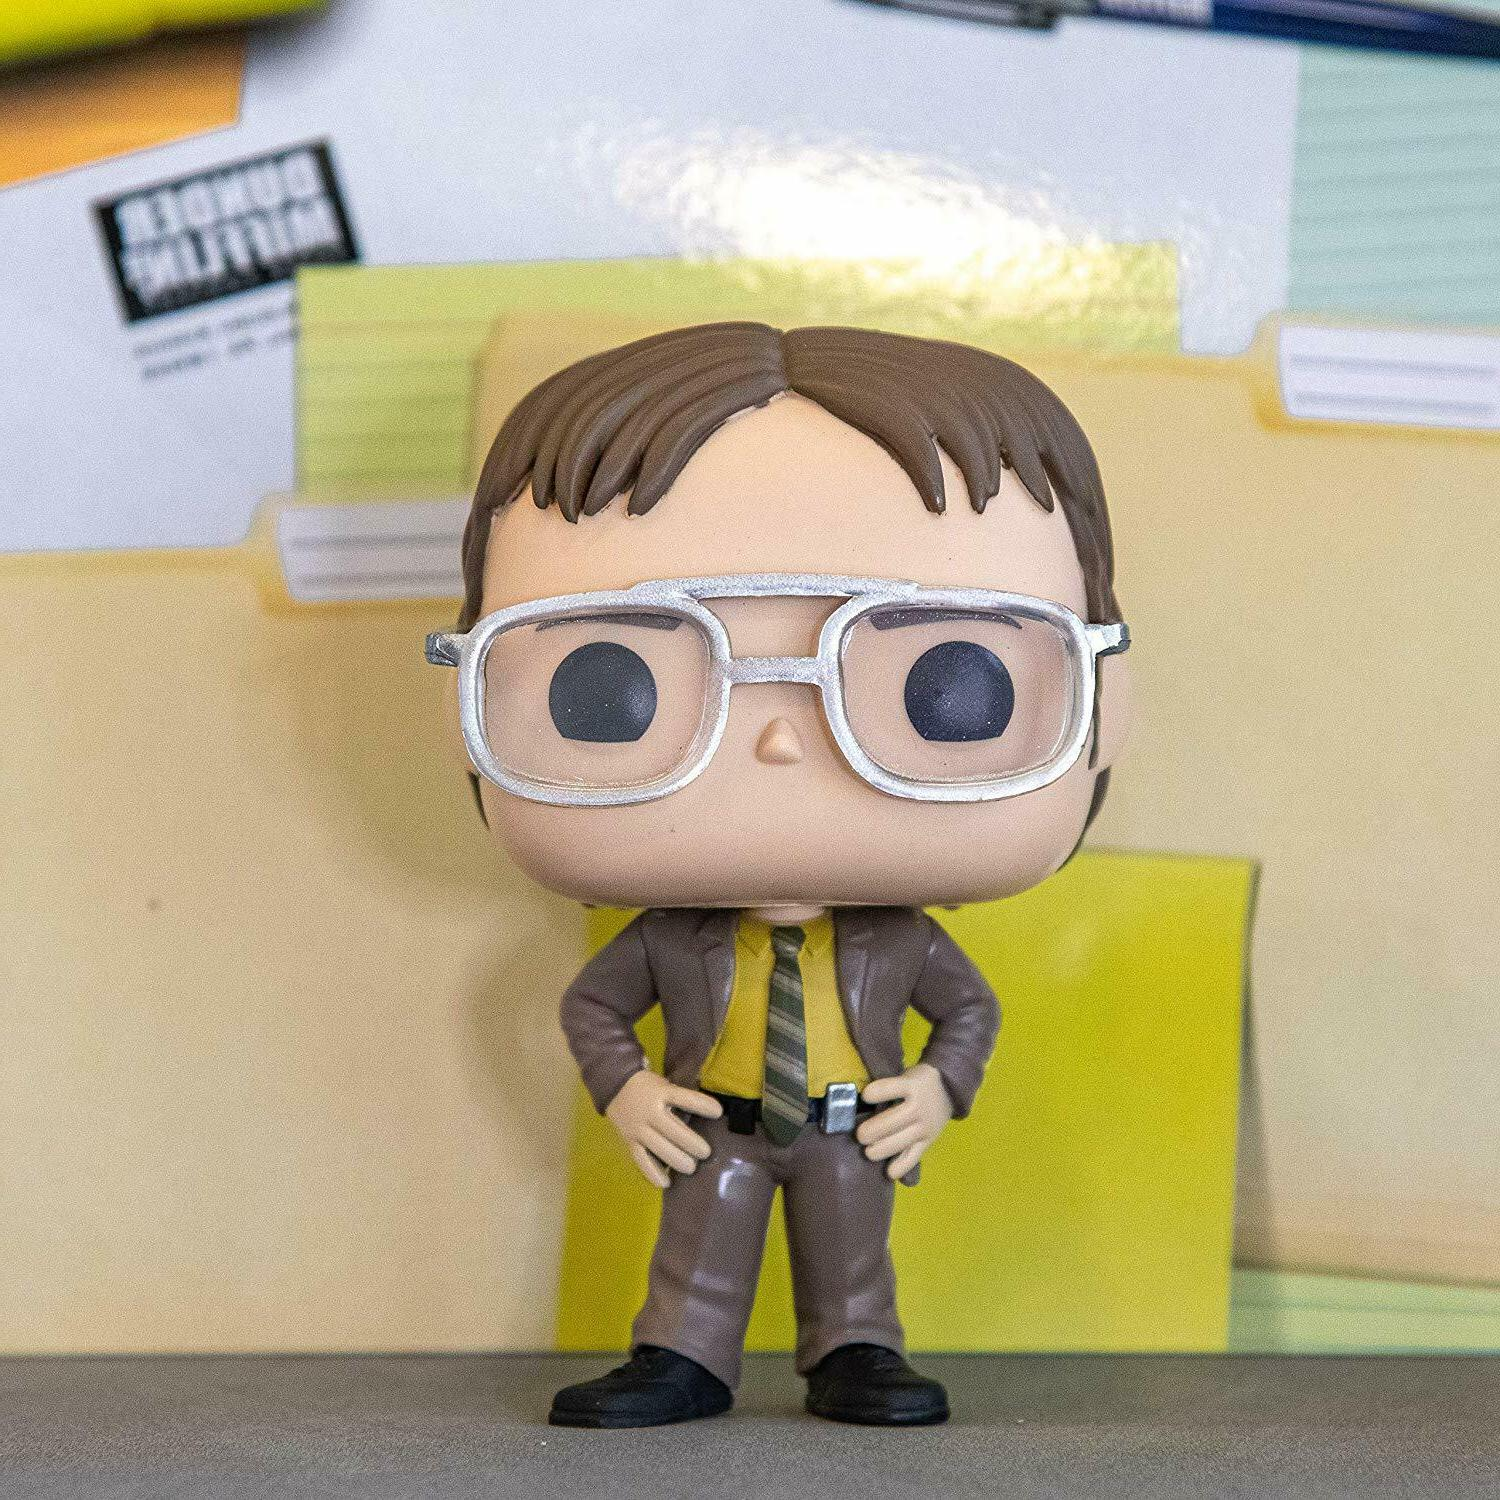 FUNKO POP! TELEVISION: THE OFFICE-DWIGHT SCHRUTE 34906 VINYL IN STOCK